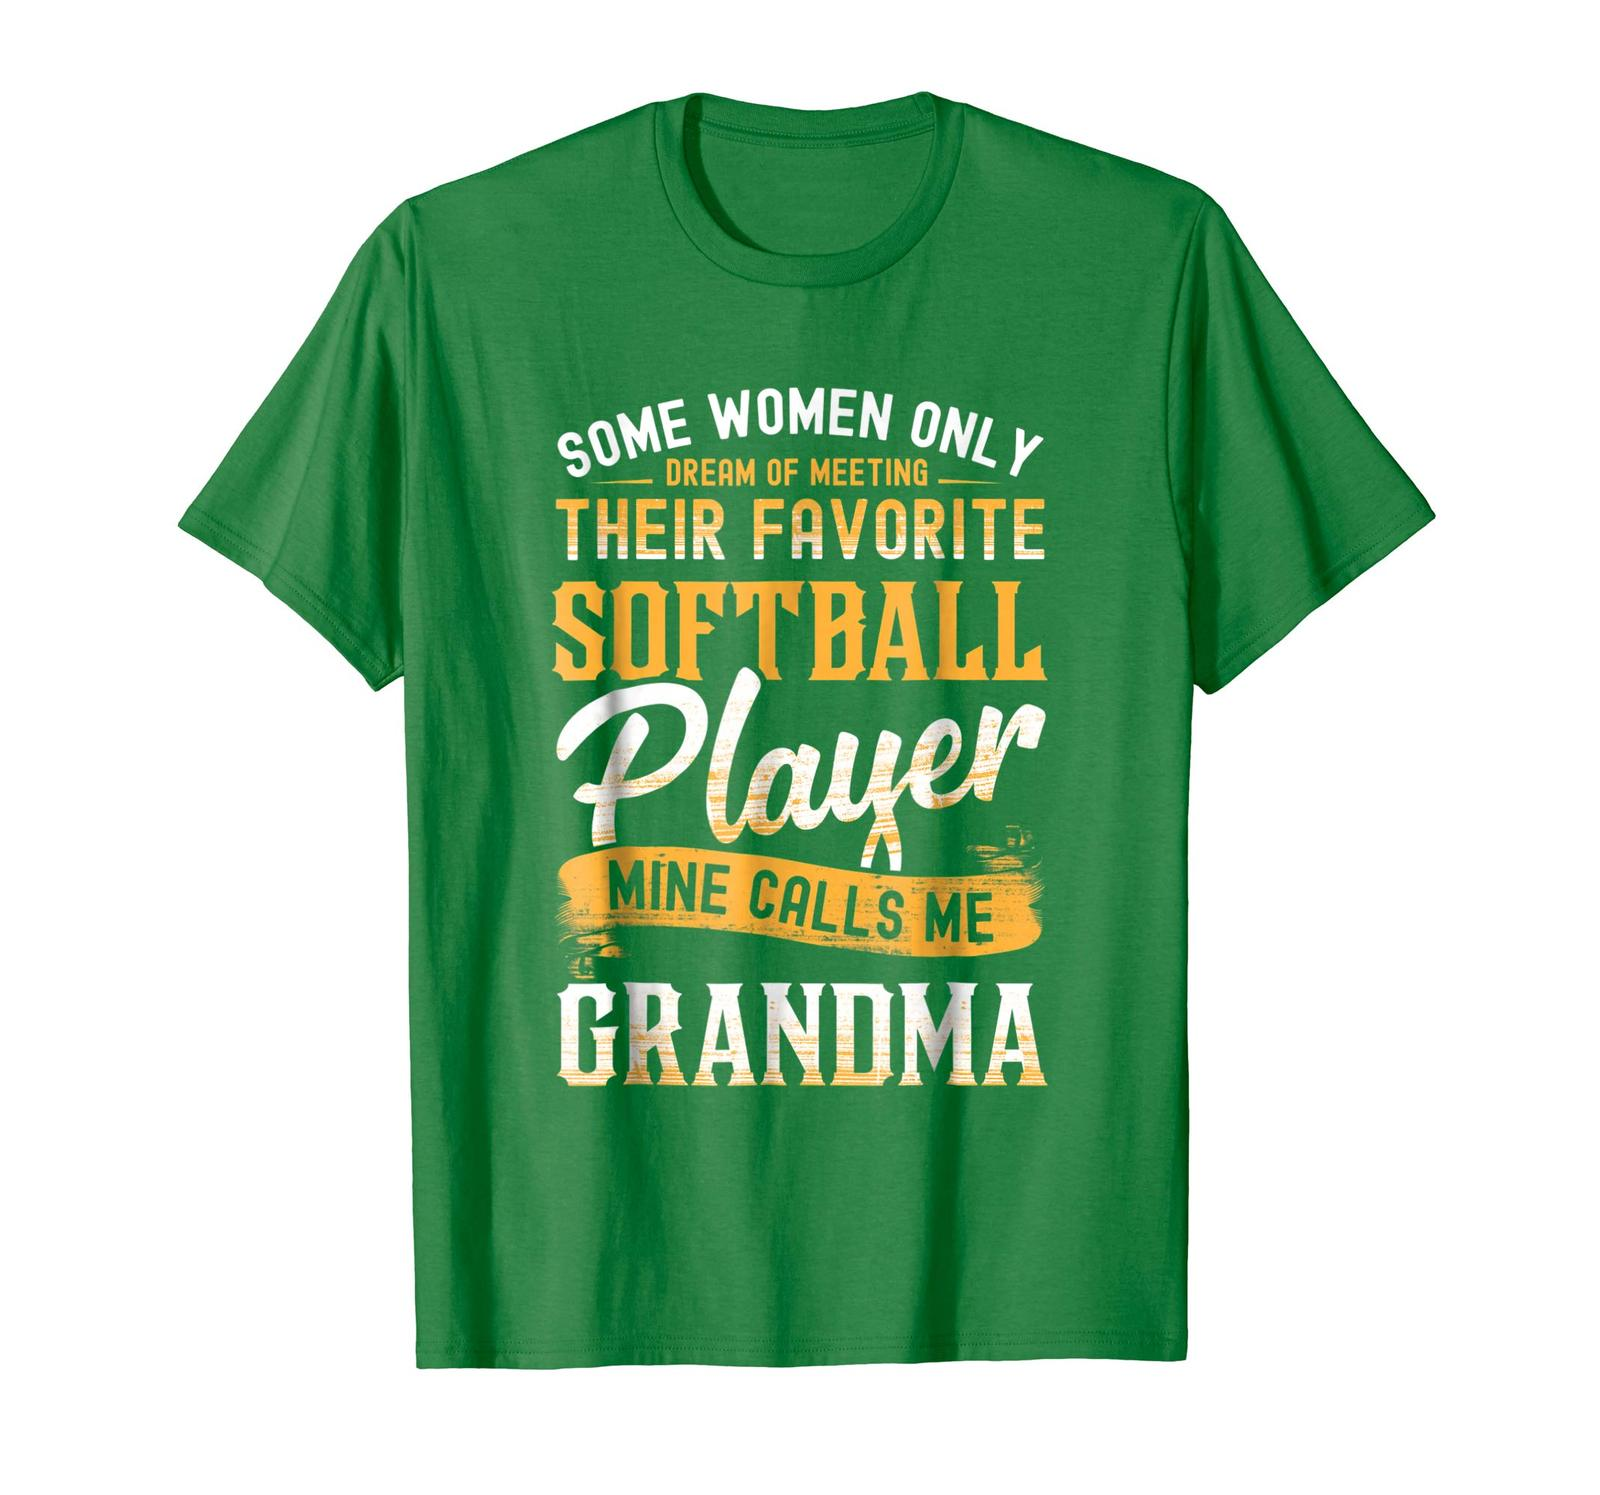 Funny TeeSome Women Dream Softball Player Calls Me Grandma T-Shirt Men